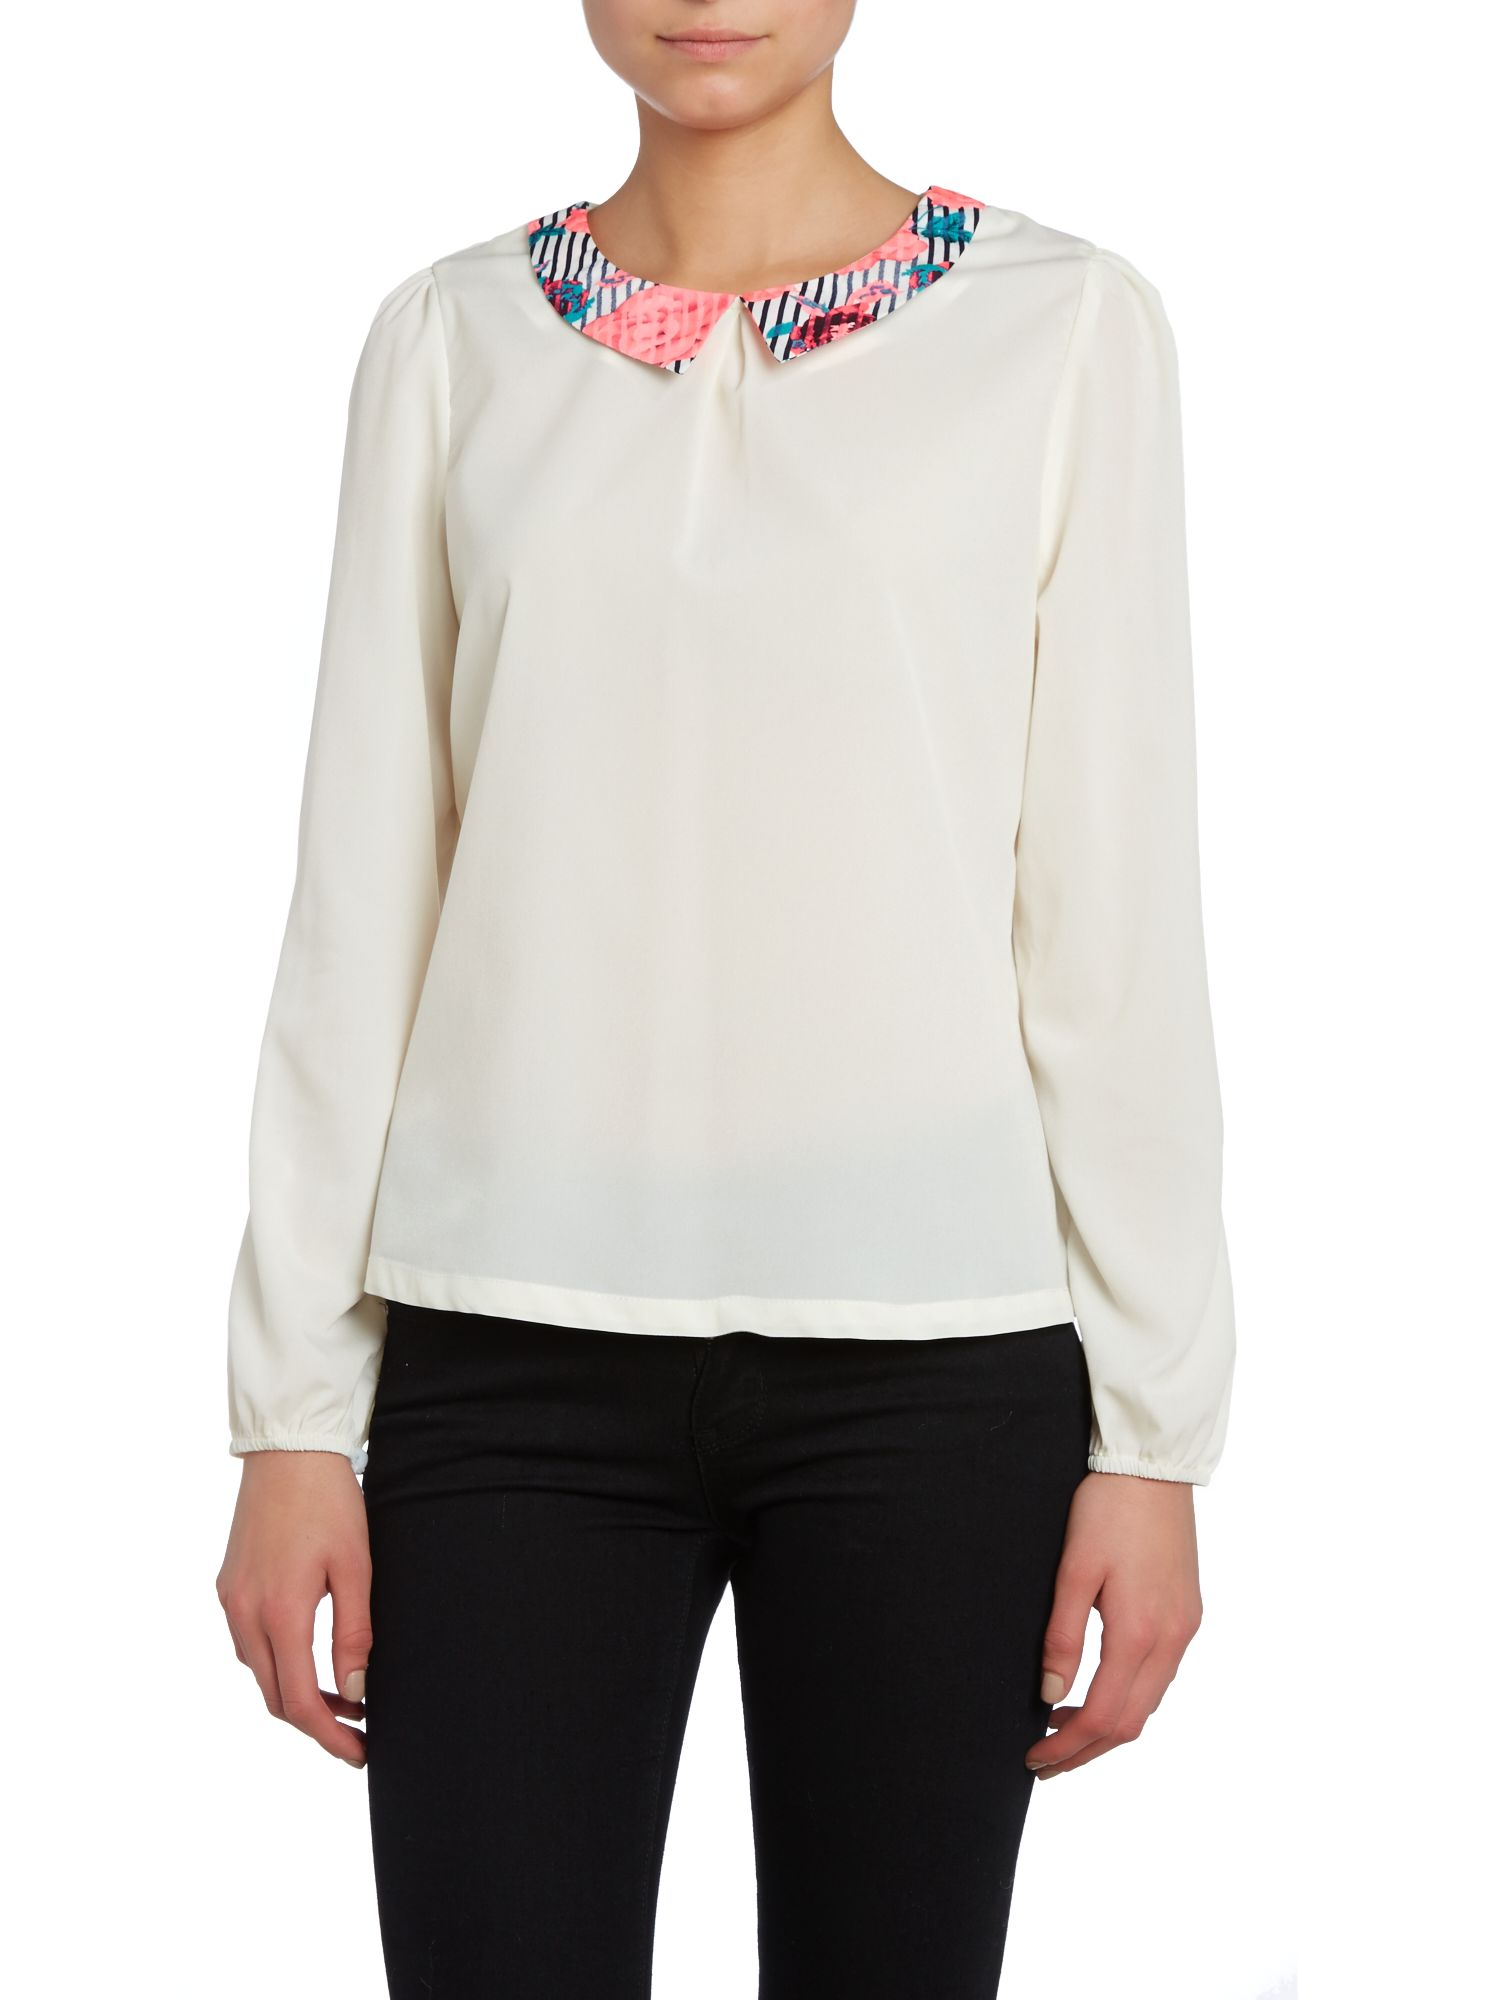 Chiffon blouse with collar